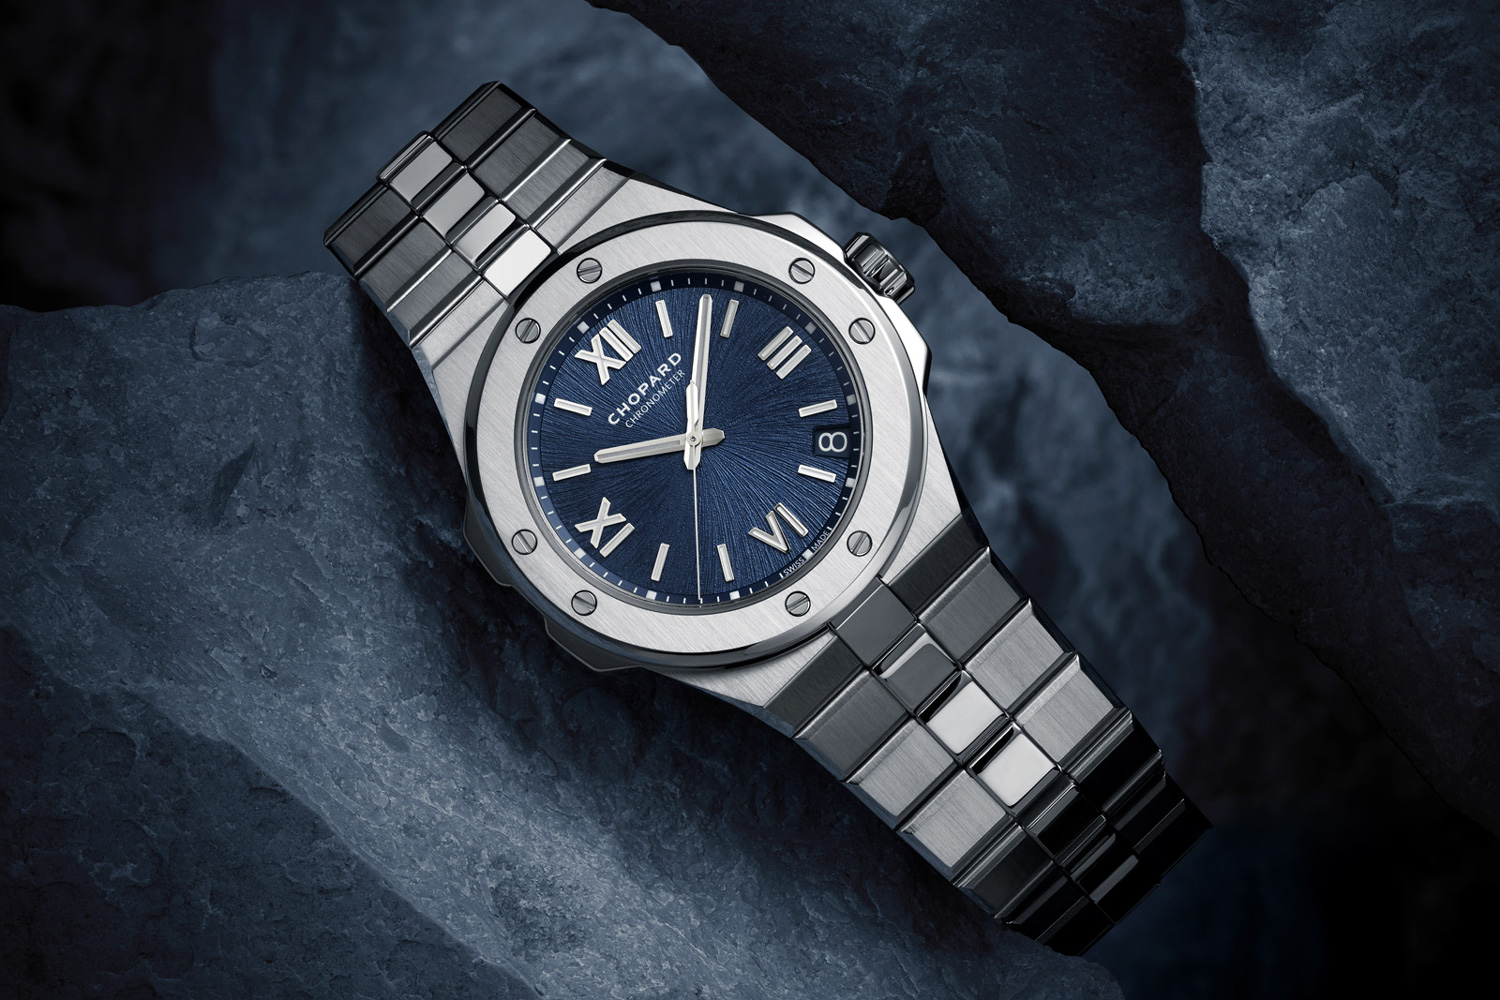 The Alpine Eagle presents the first instance in which recycled steel has been used in Swiss high watchmaking.